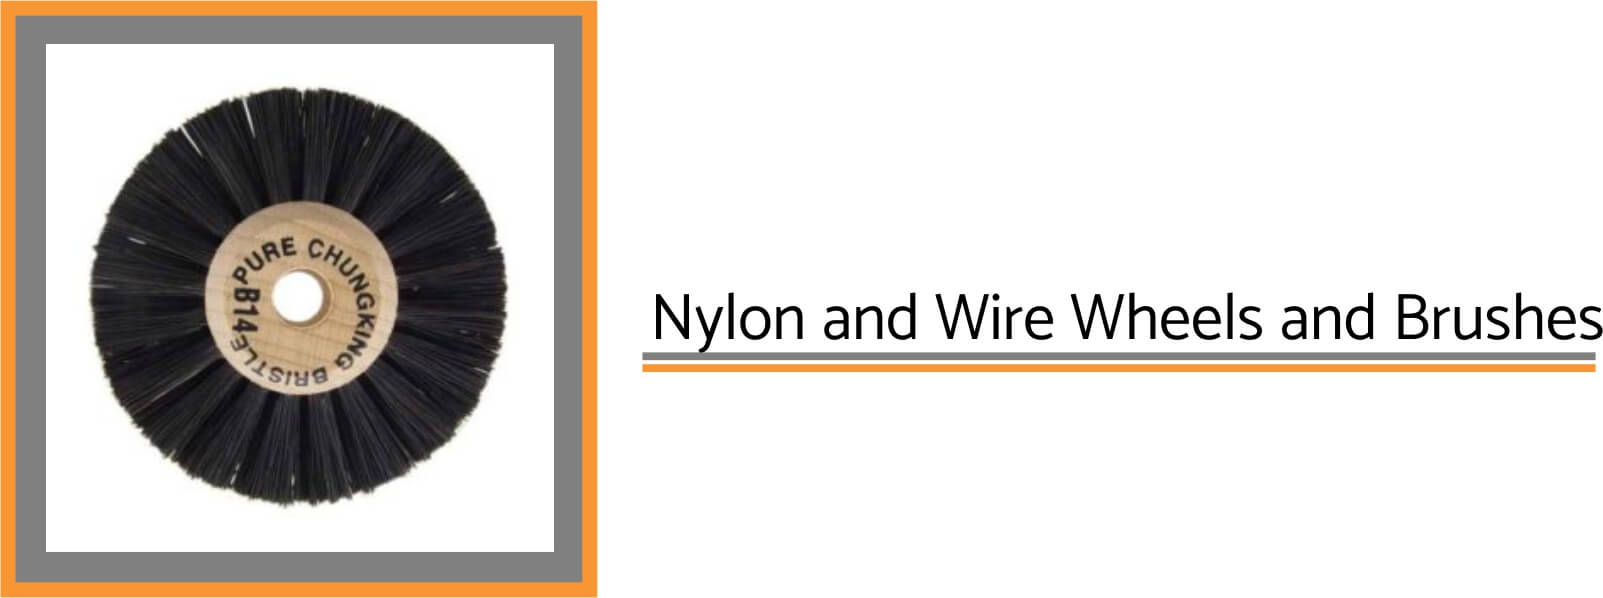 Nylon and Wire Wheels and Brushes